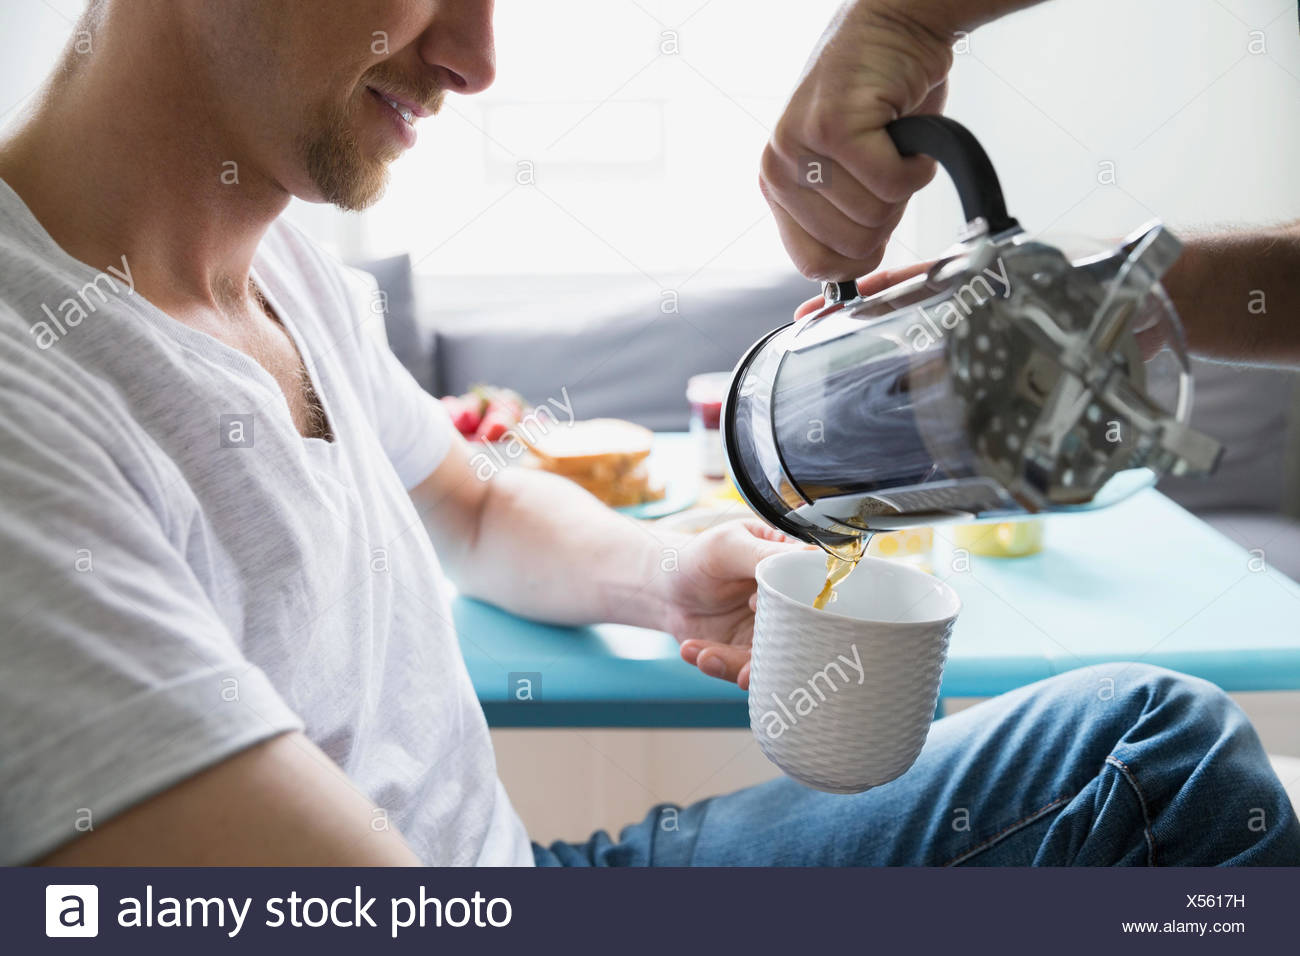 Man pouring French press coffee - Stock Image